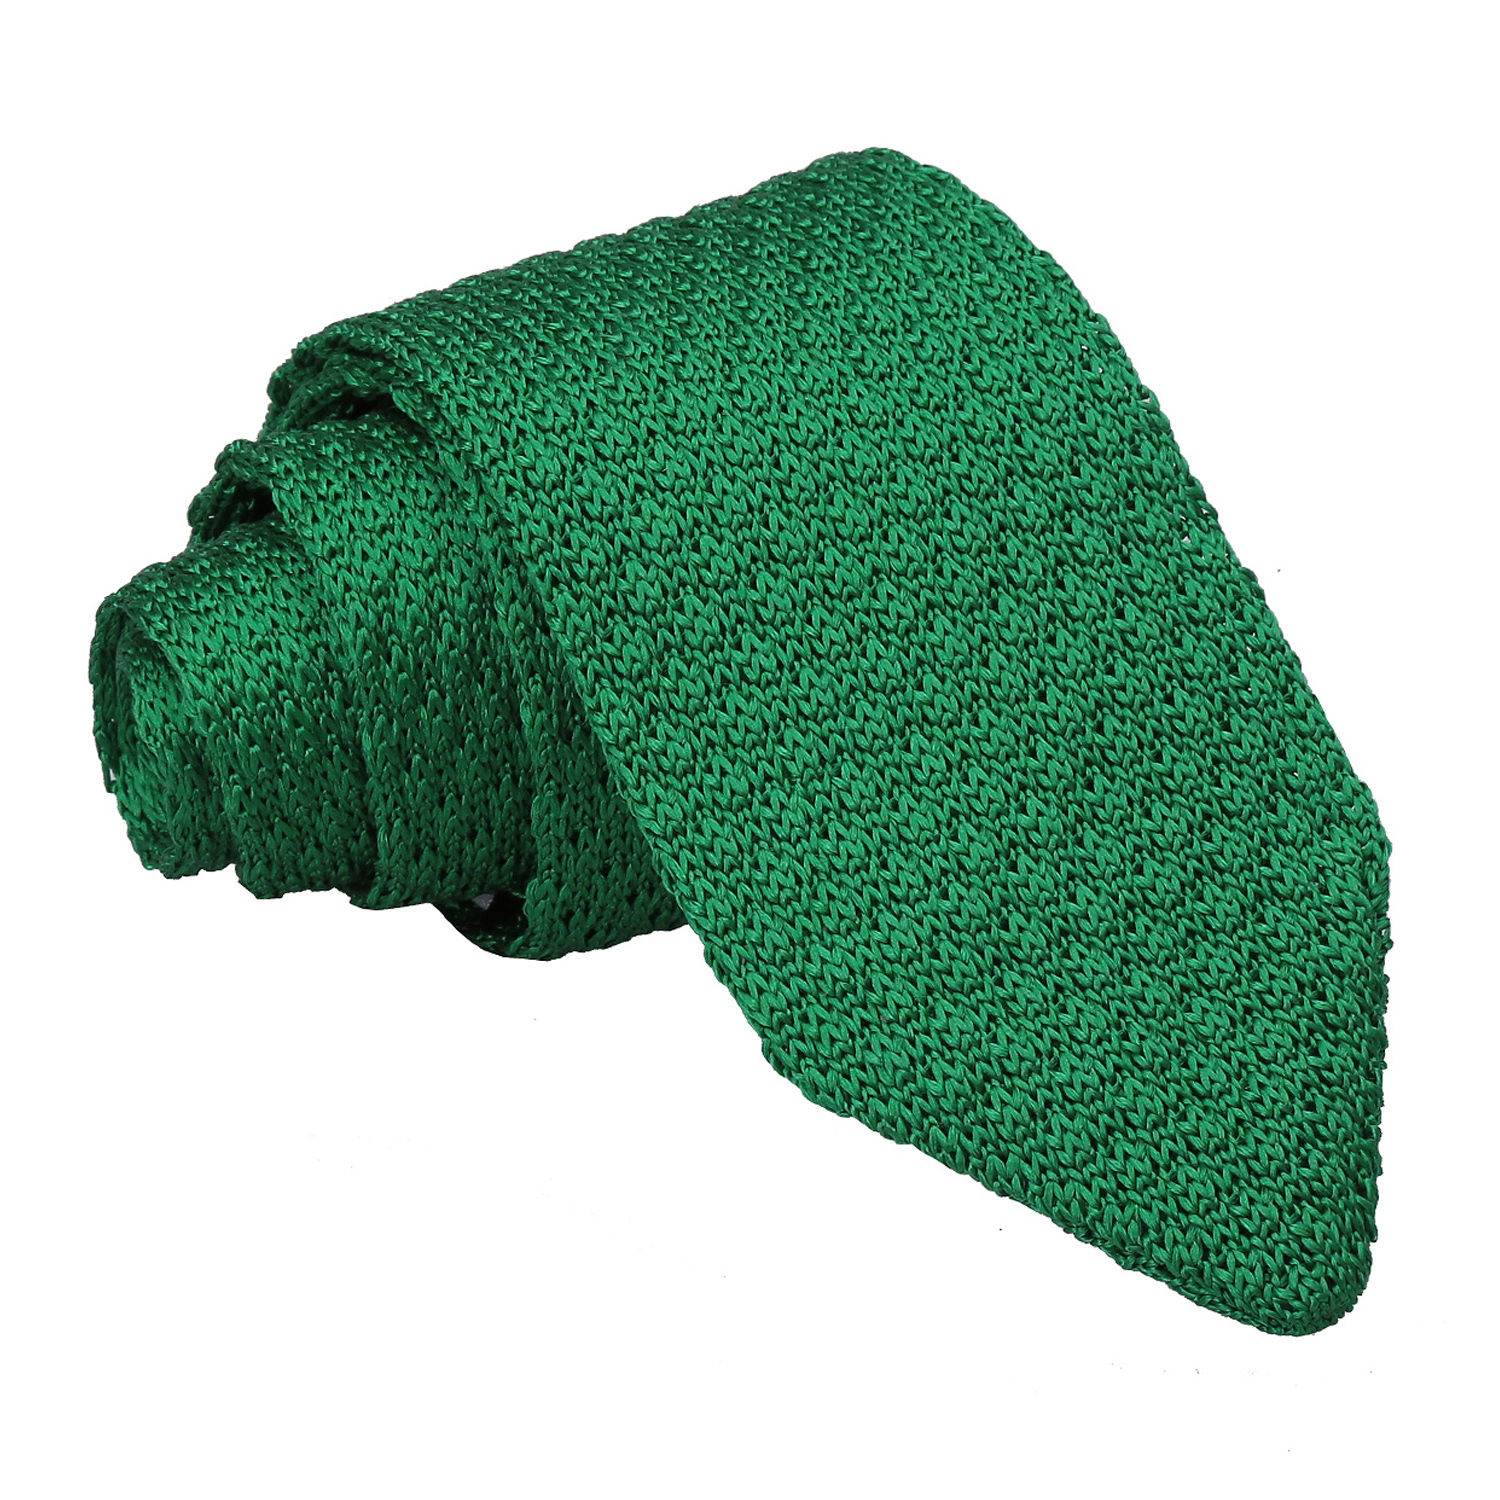 JA Grenadine Knitted Silk Emerald Green Tie